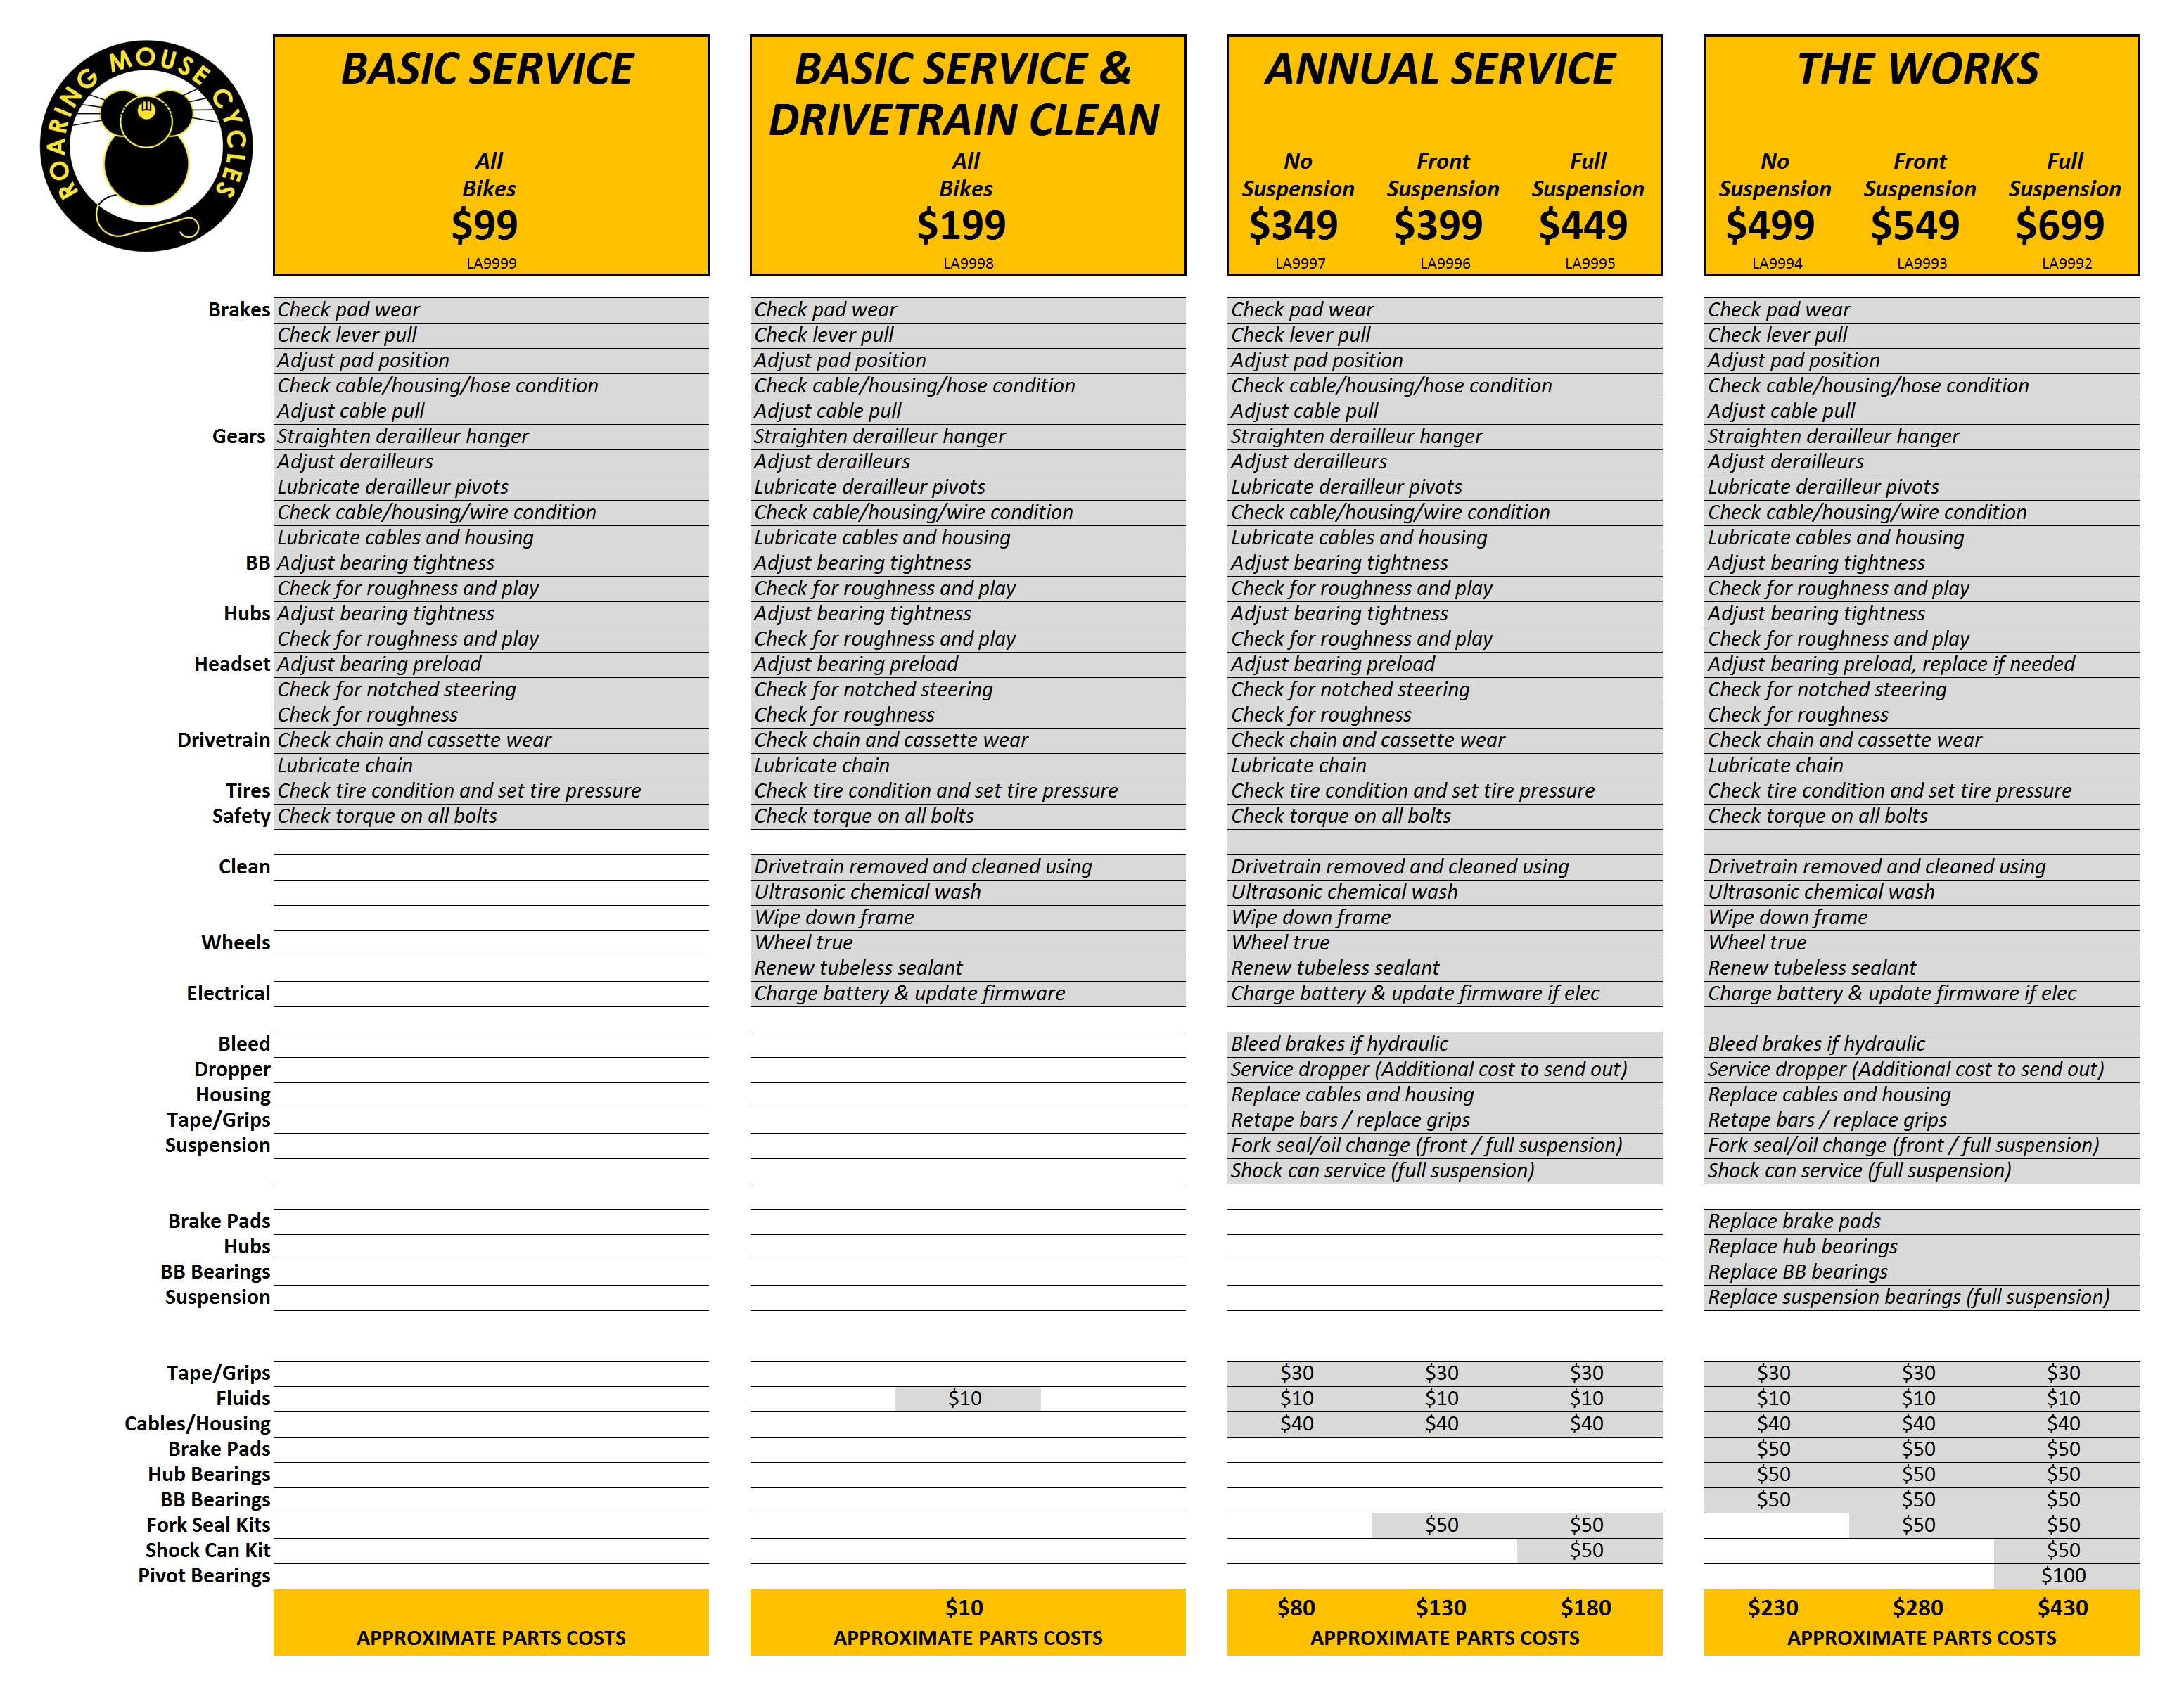 Service rate chart